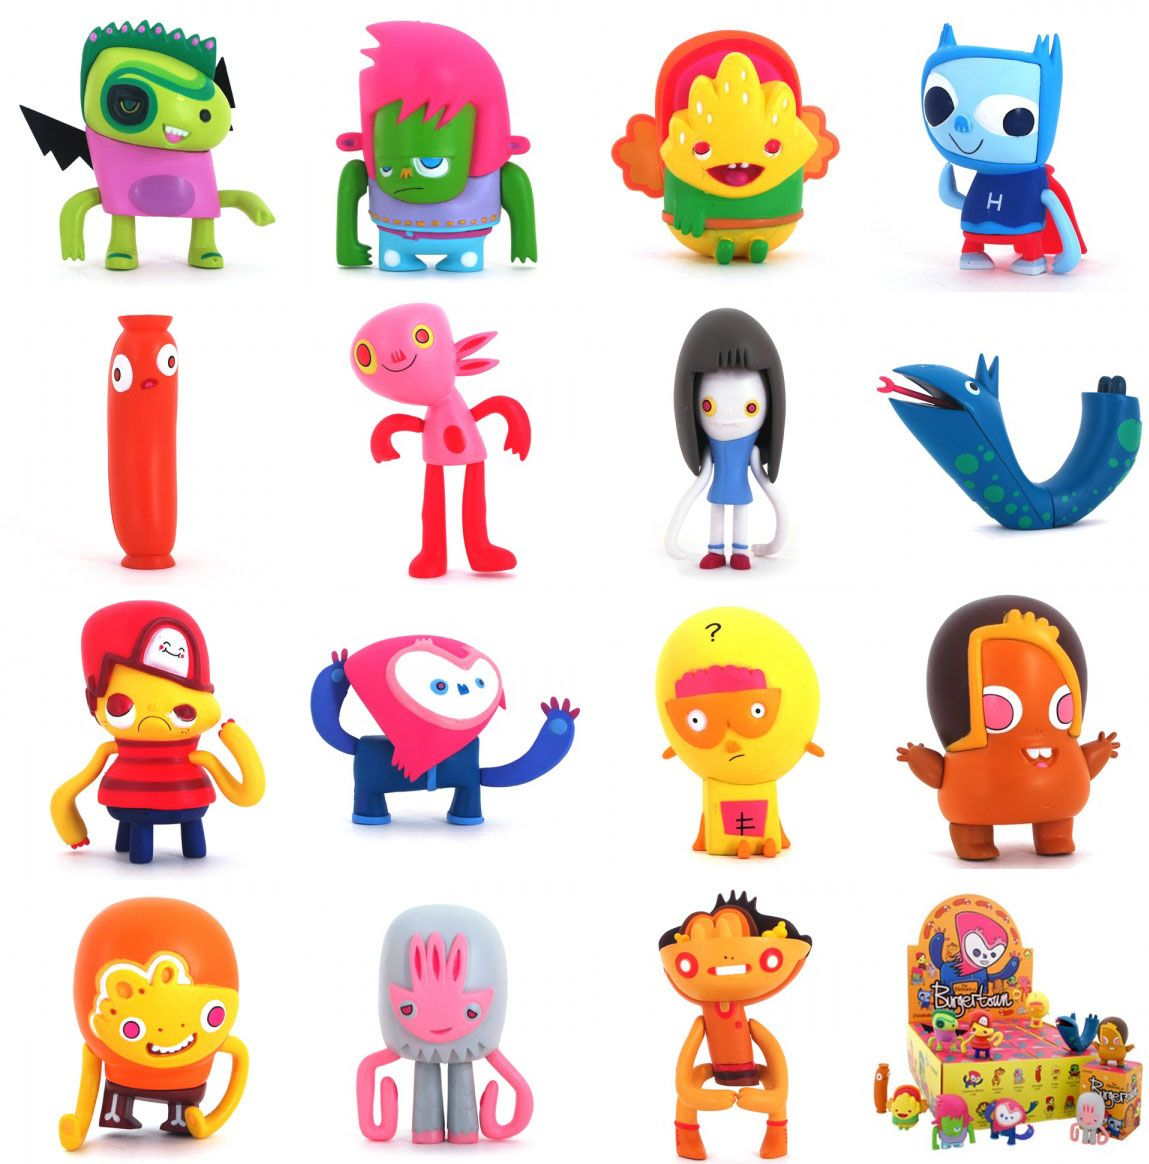 Baby toys images cartoon  Toys from Kidrobot The heroes from Burgertown  puppet  Pinterest